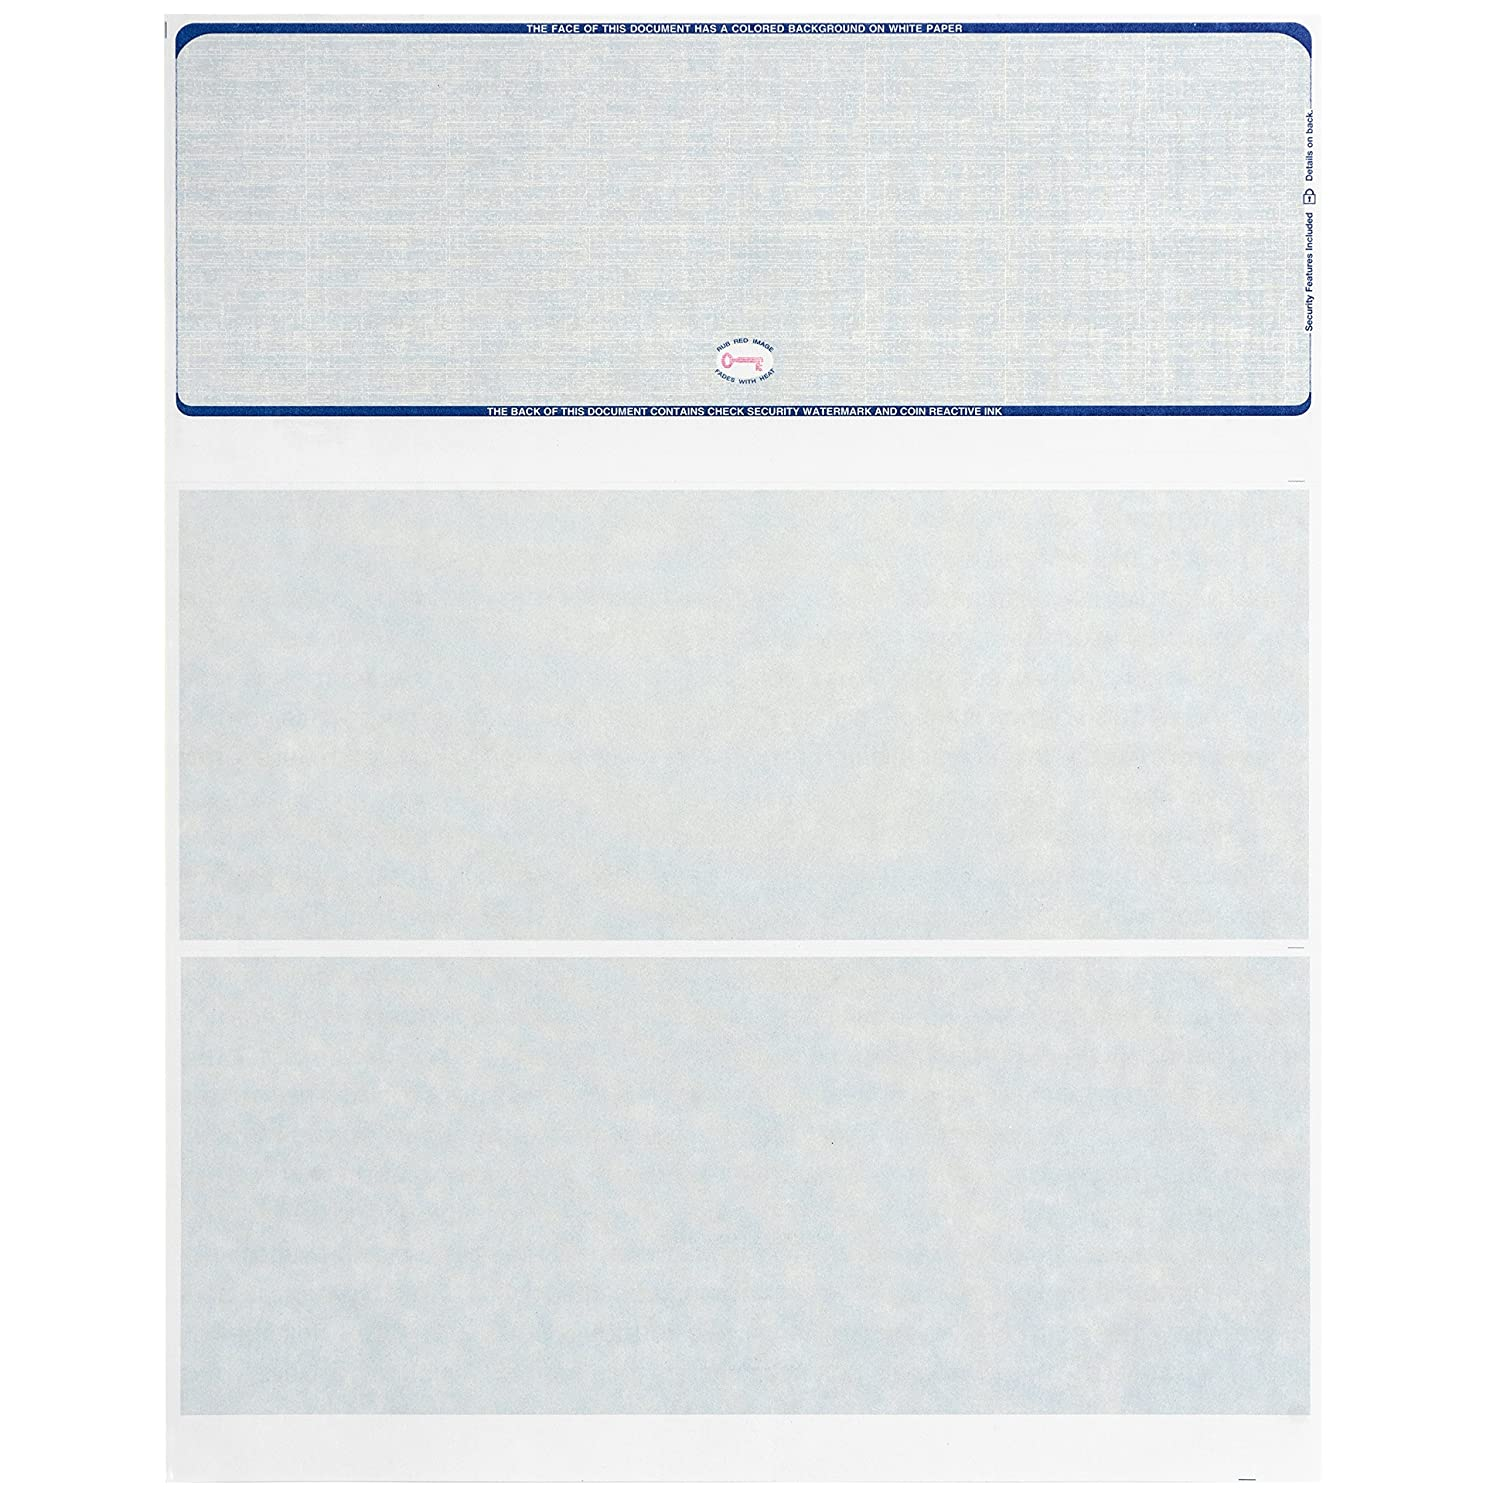 photograph relating to Printable Checks for Quickbooks named 500 Blank Look at Inventory- Established for Protected Personal computer Published Tests with Quickbooks, and excess - Blue Linen Behavior- 500 Sheets - 8.5 x 11